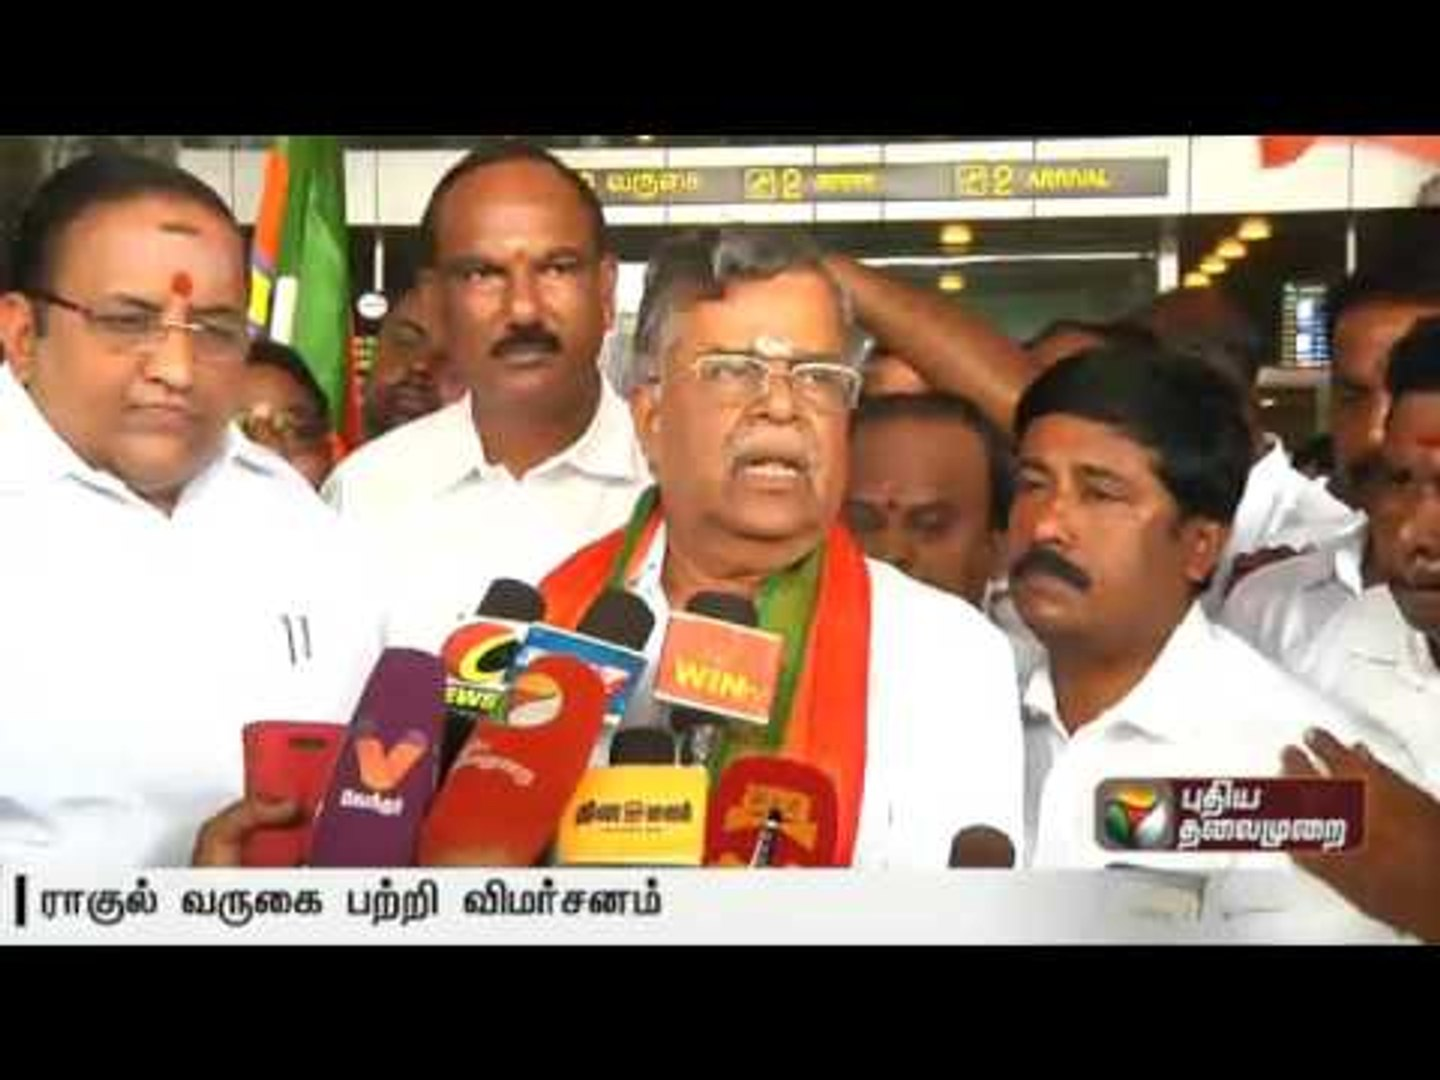 L. Ganesan on members of political parties who visit the hospital where the CM is under treatment